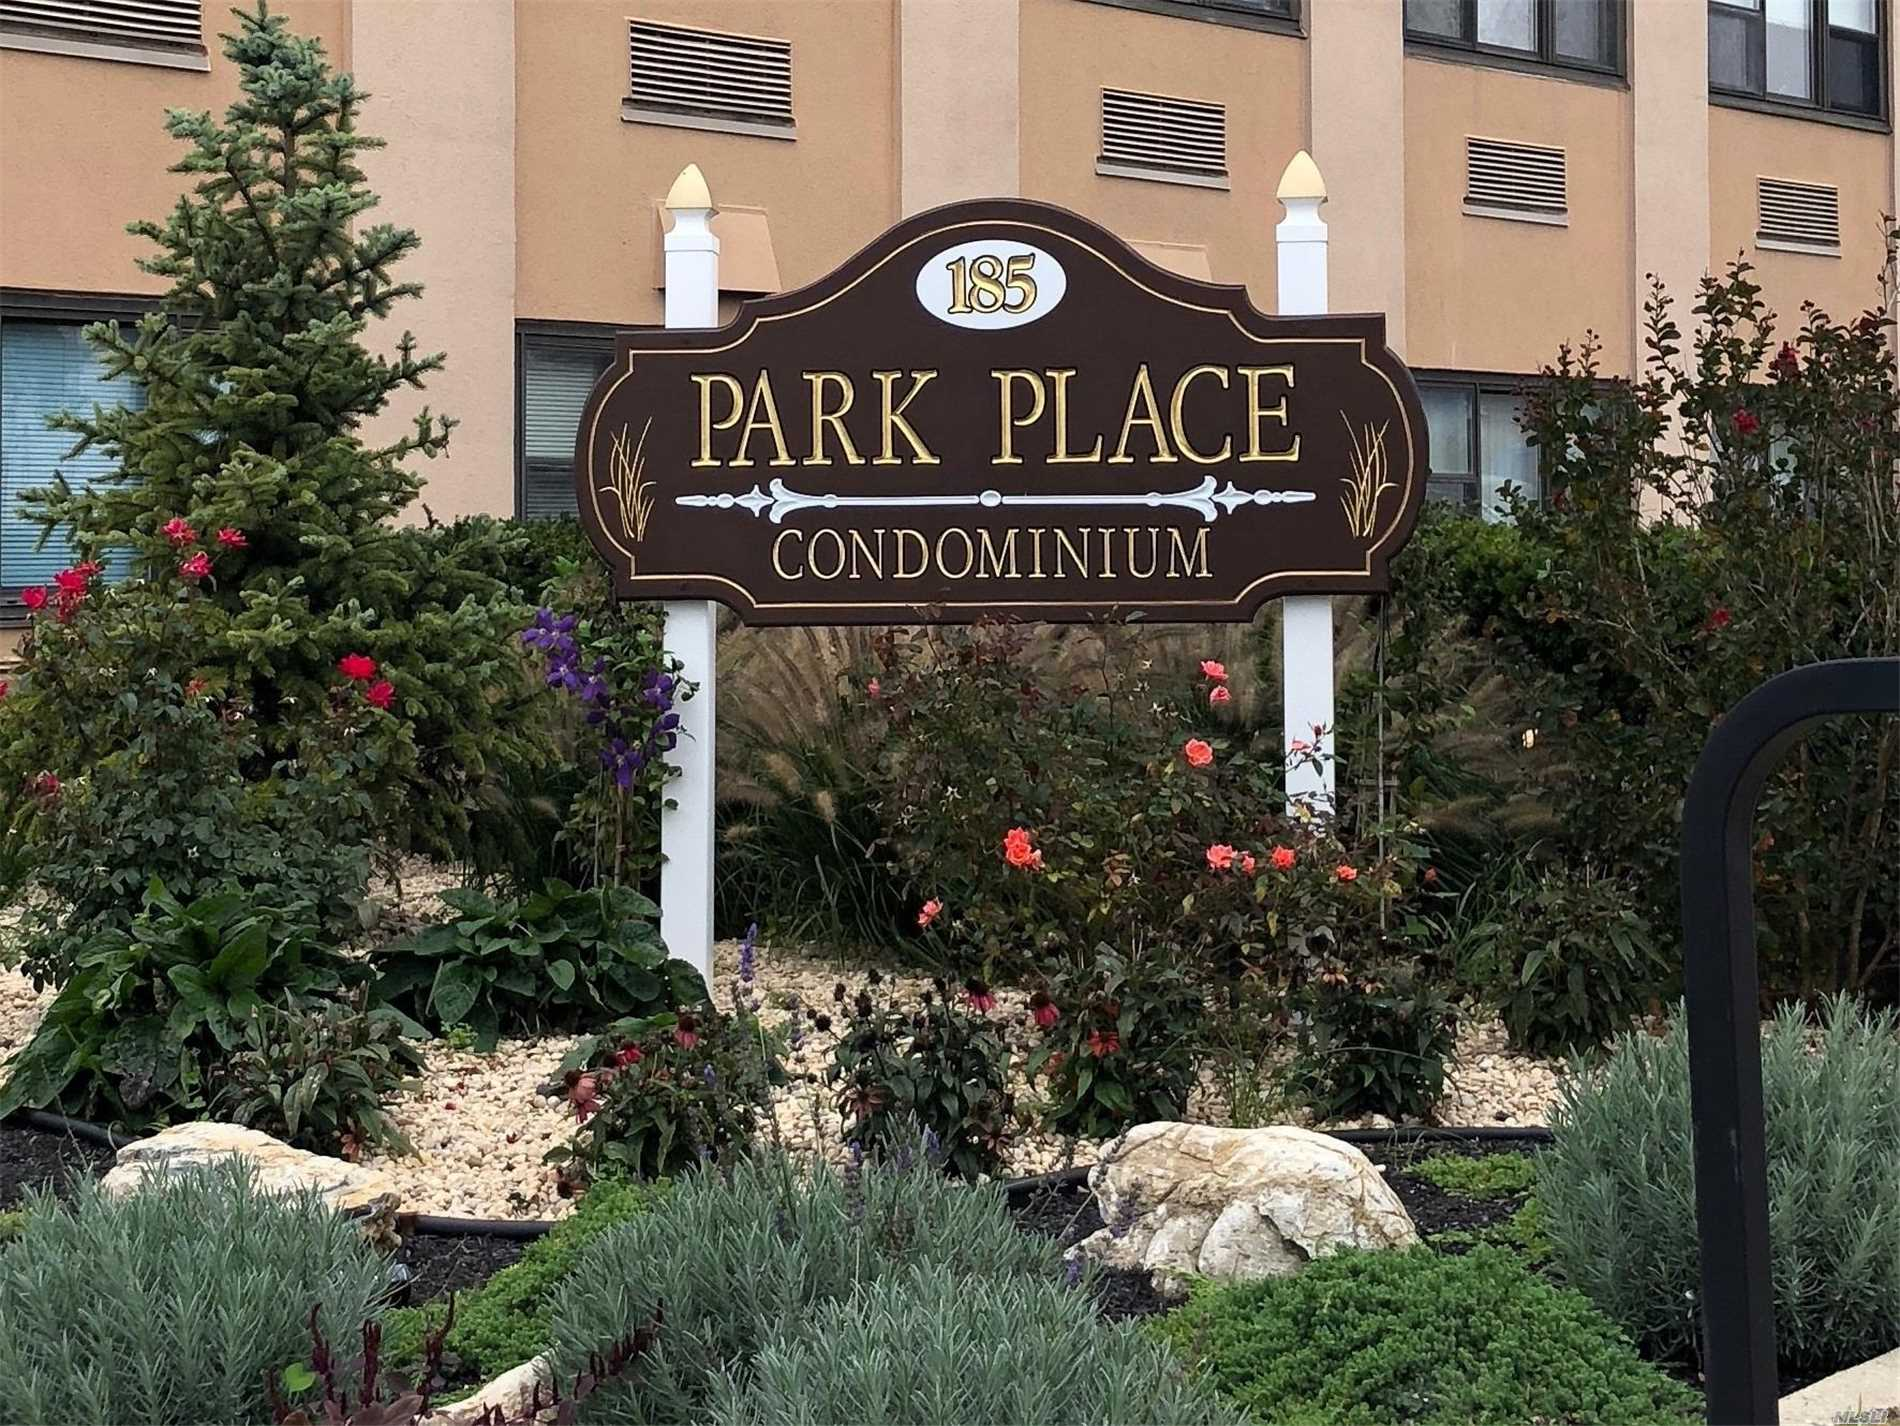 Property for sale at 185 W Park Ave, Long Beach,  NY 11561